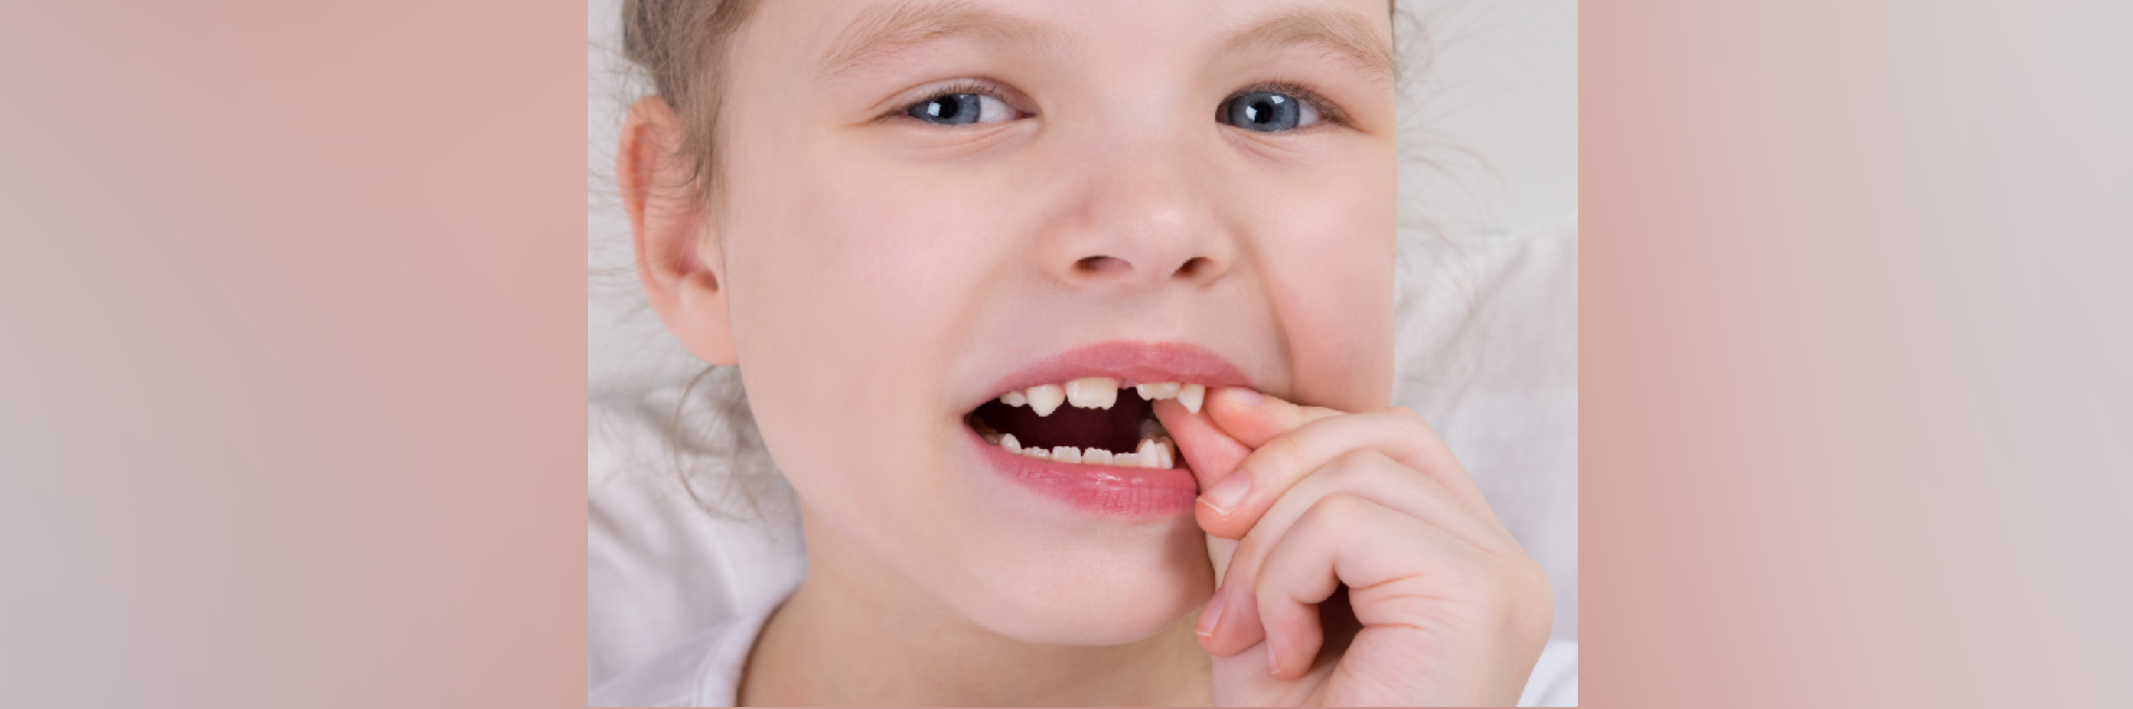 What To Expect After A Baby Tooth Extraction